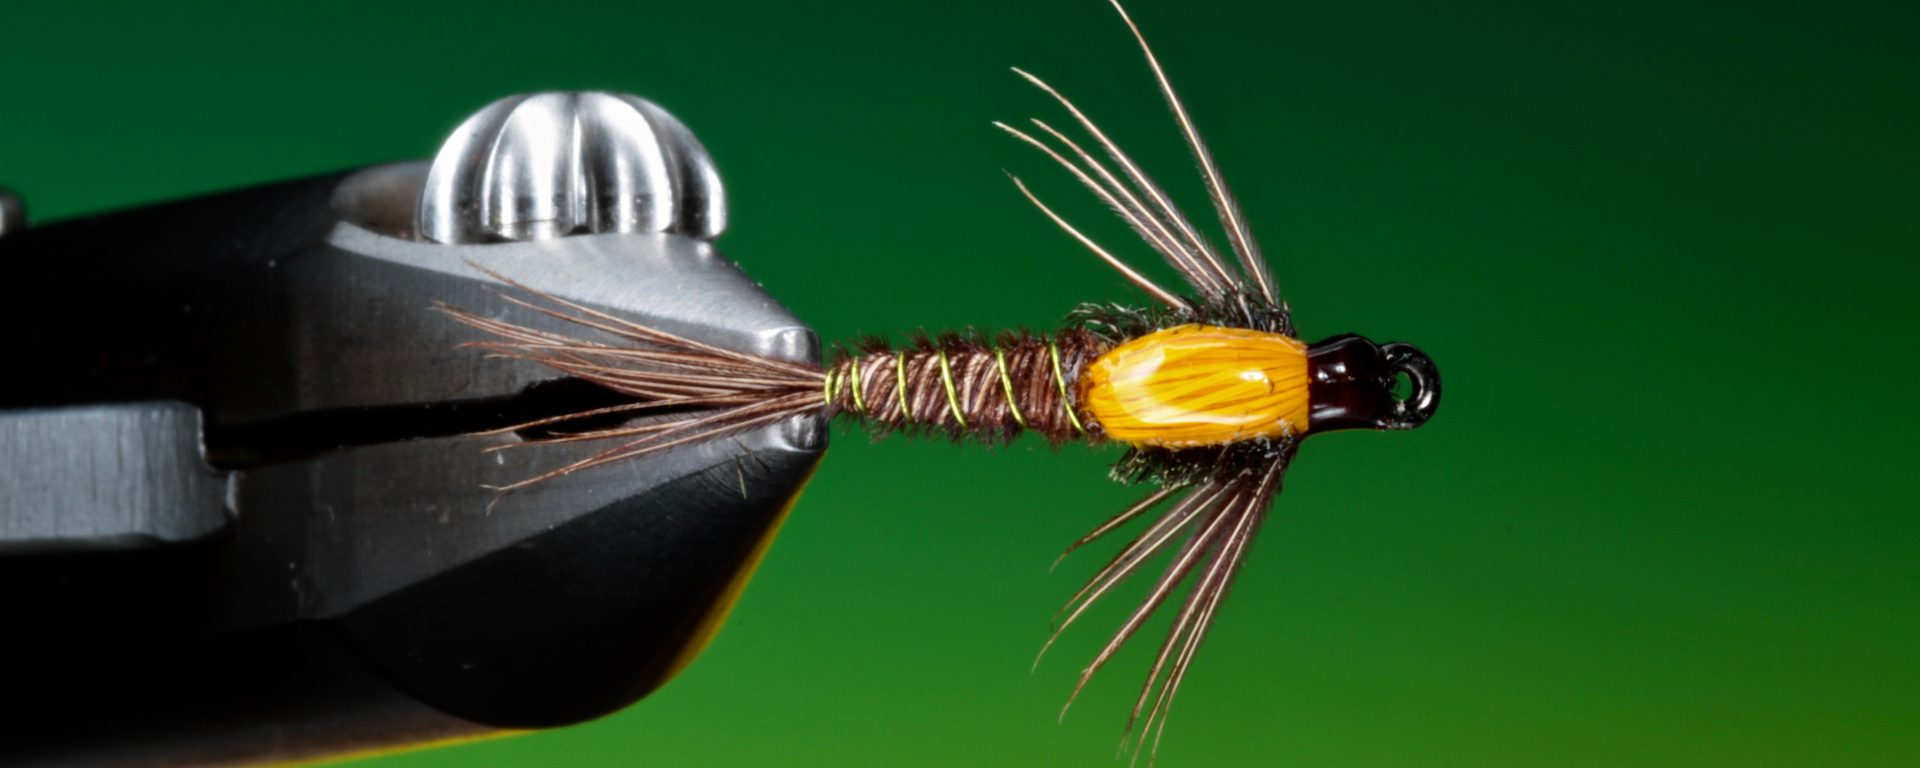 fly tying Hot spot pheasant tail nymph